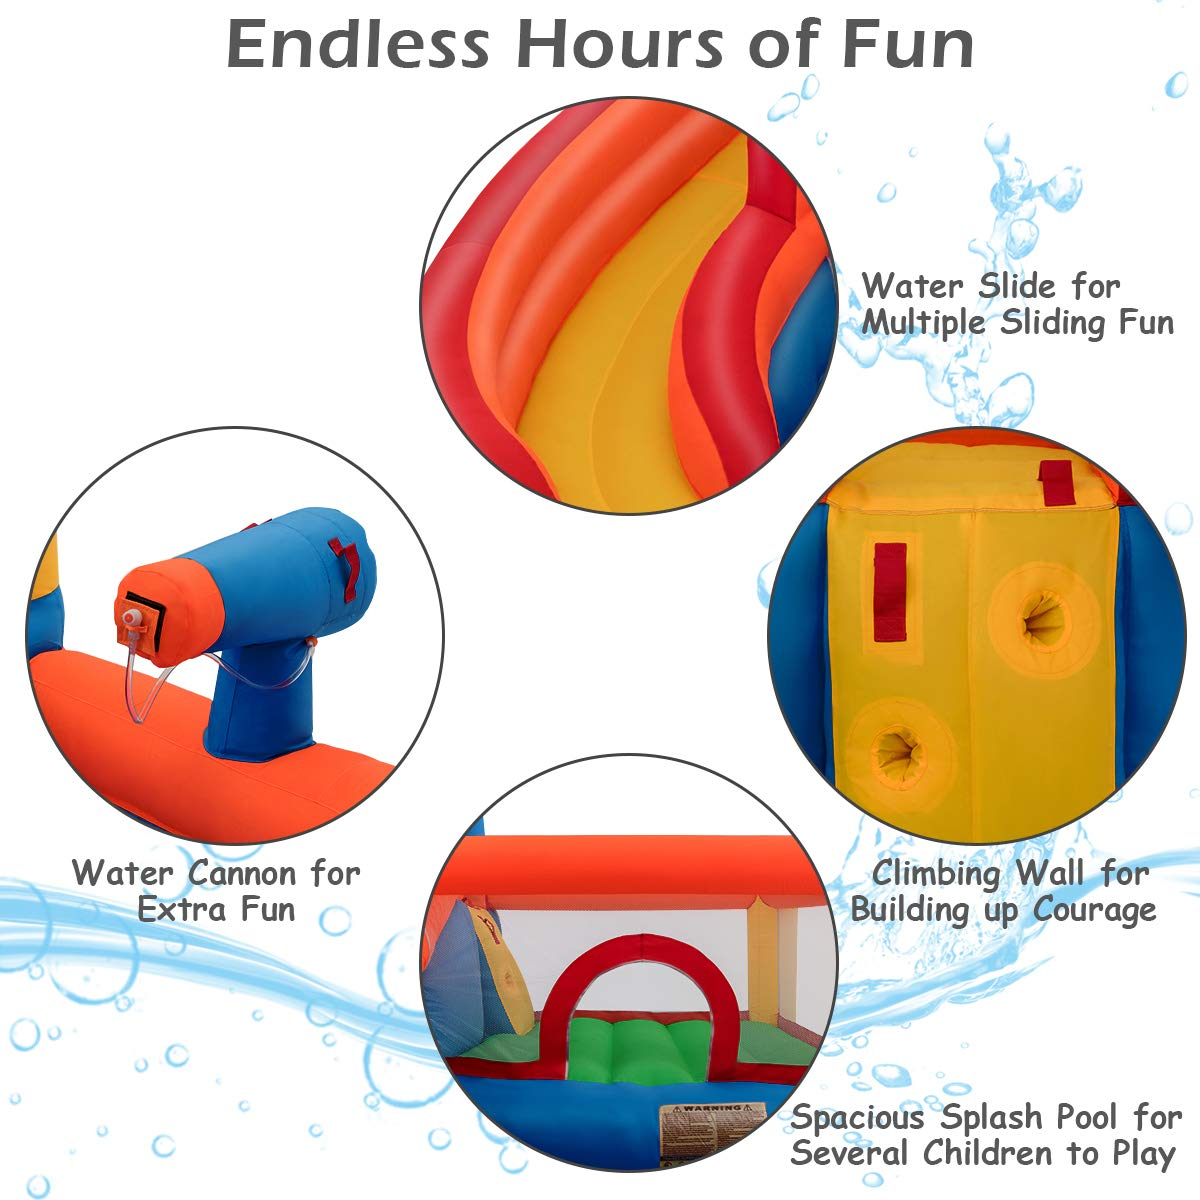 Costzon Inflatable Bounce House, 5-in-1 Water Slide w/ Climbing Wall, Jumping Area, Splash Pool, Water Cannon, Including Oxford Carry Bag, Repairing Kit, Stakes, Hose, Without Blower by Costzon (Image #3)